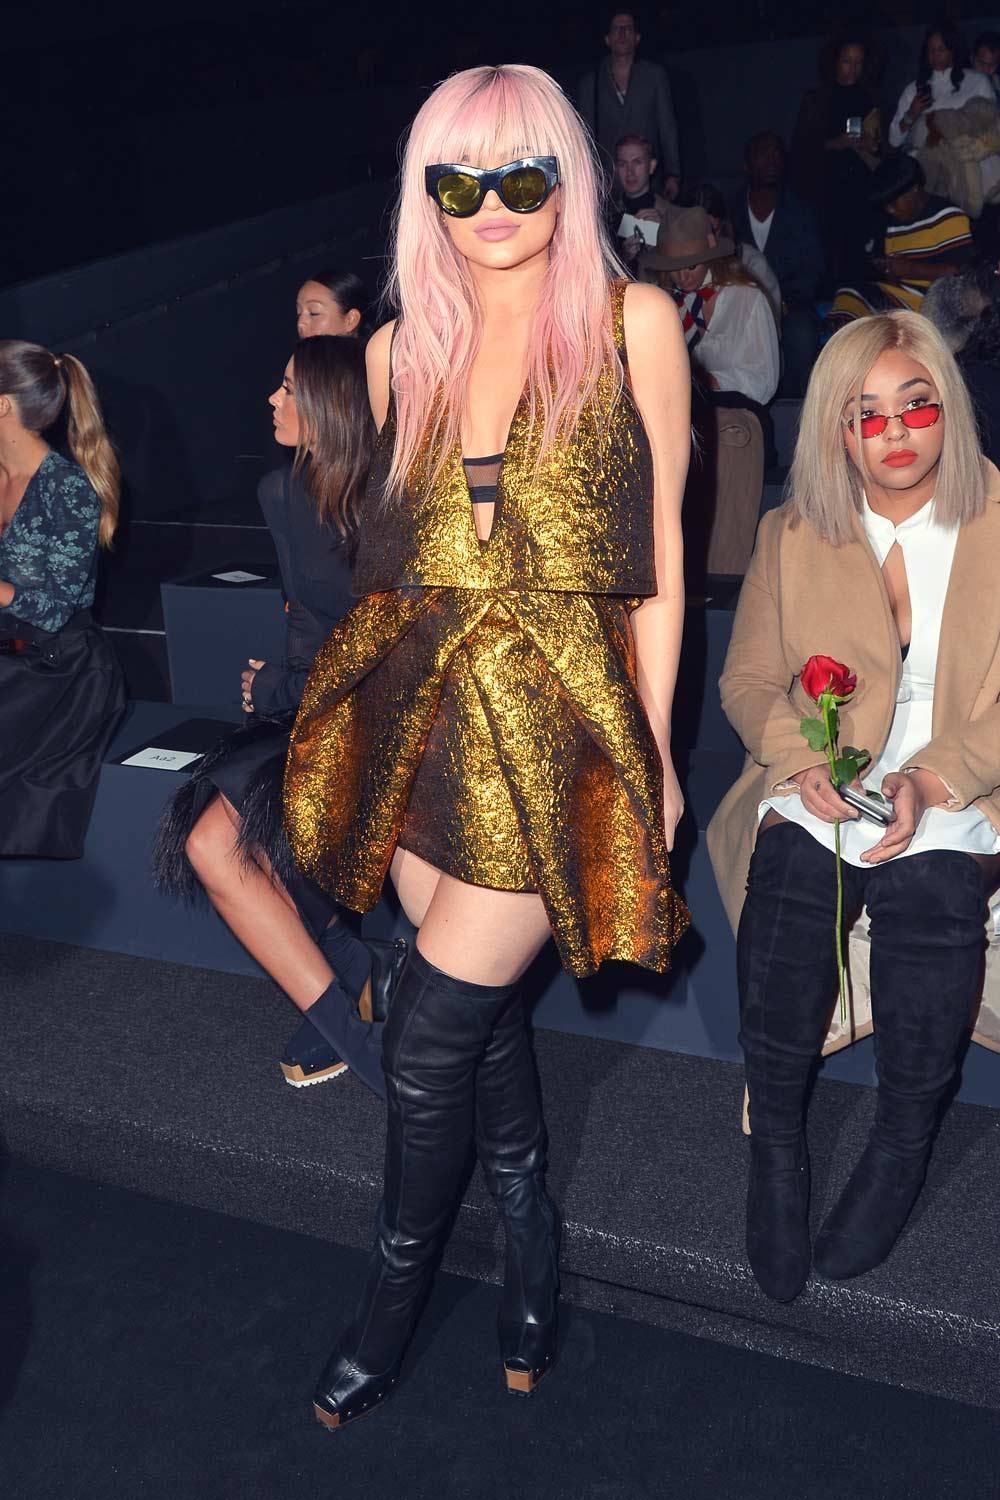 Kylie Jenner front row at the Vera Wang Fashion Show